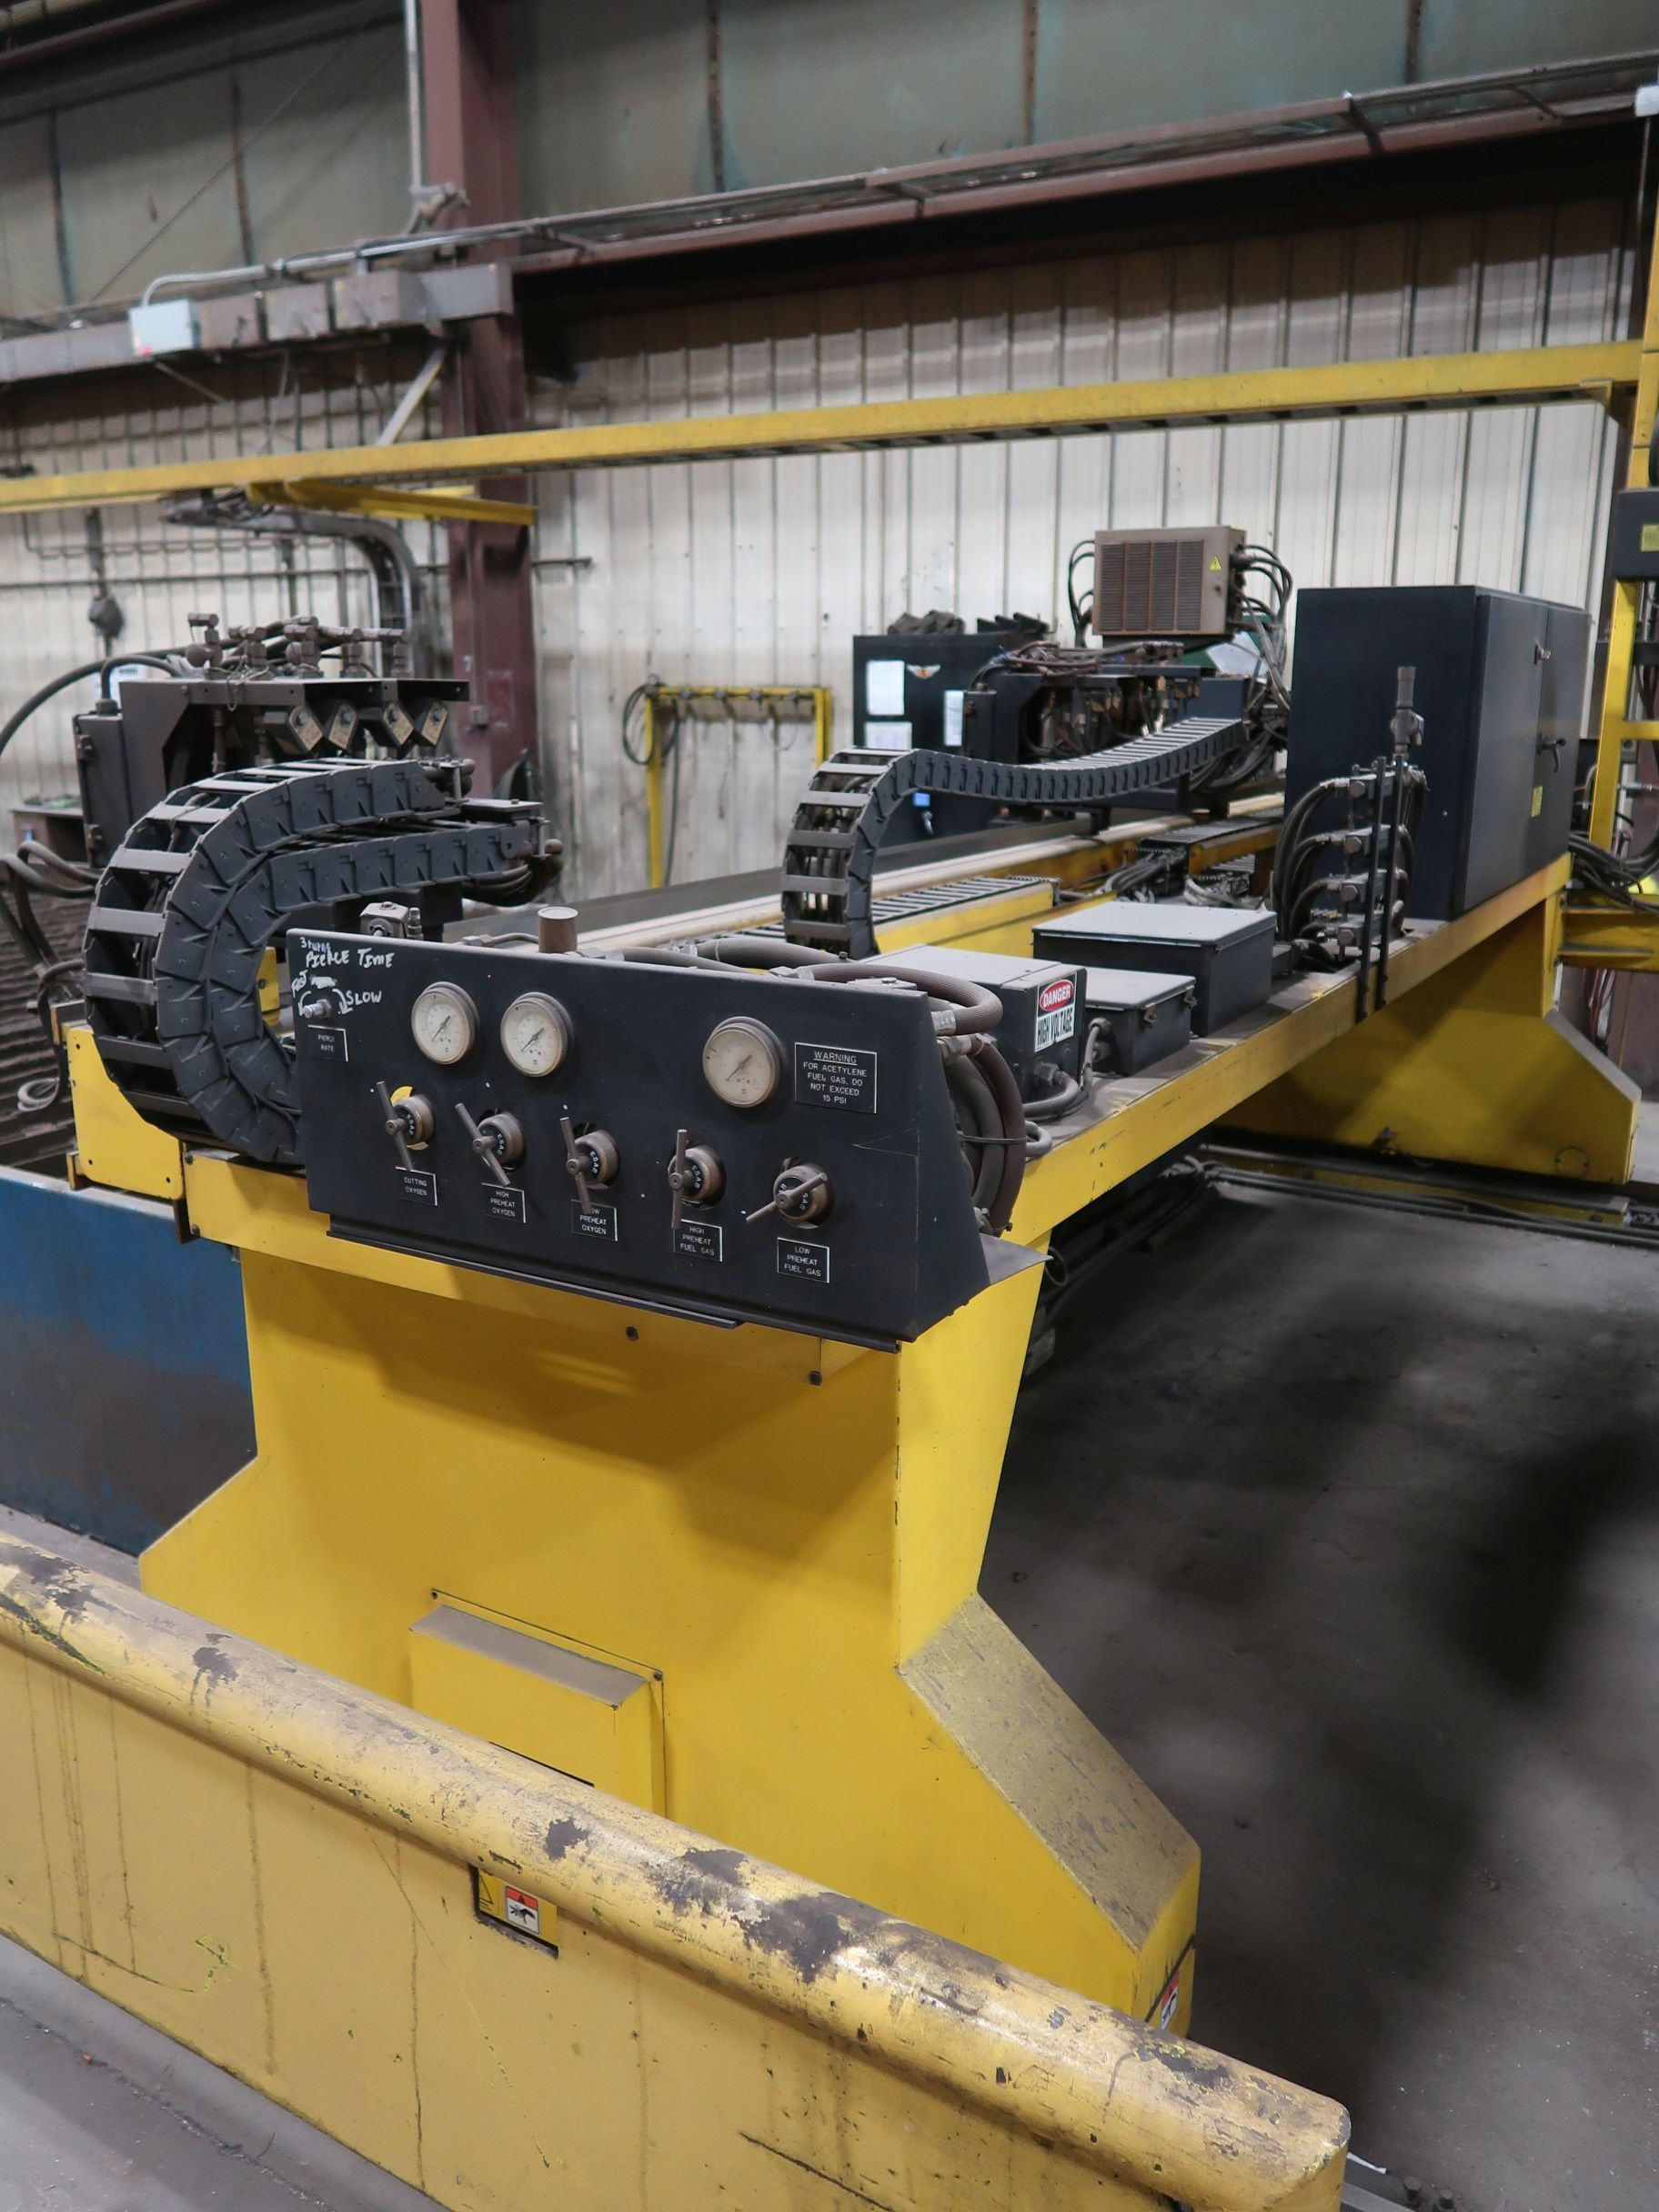 12' X 40' ESAB MODEL AVENGER 1-12 VISION PLASMA TABLE W/ BURNY 10 CONTROL; S/N 0560986386, UPDATED - Image 13 of 23